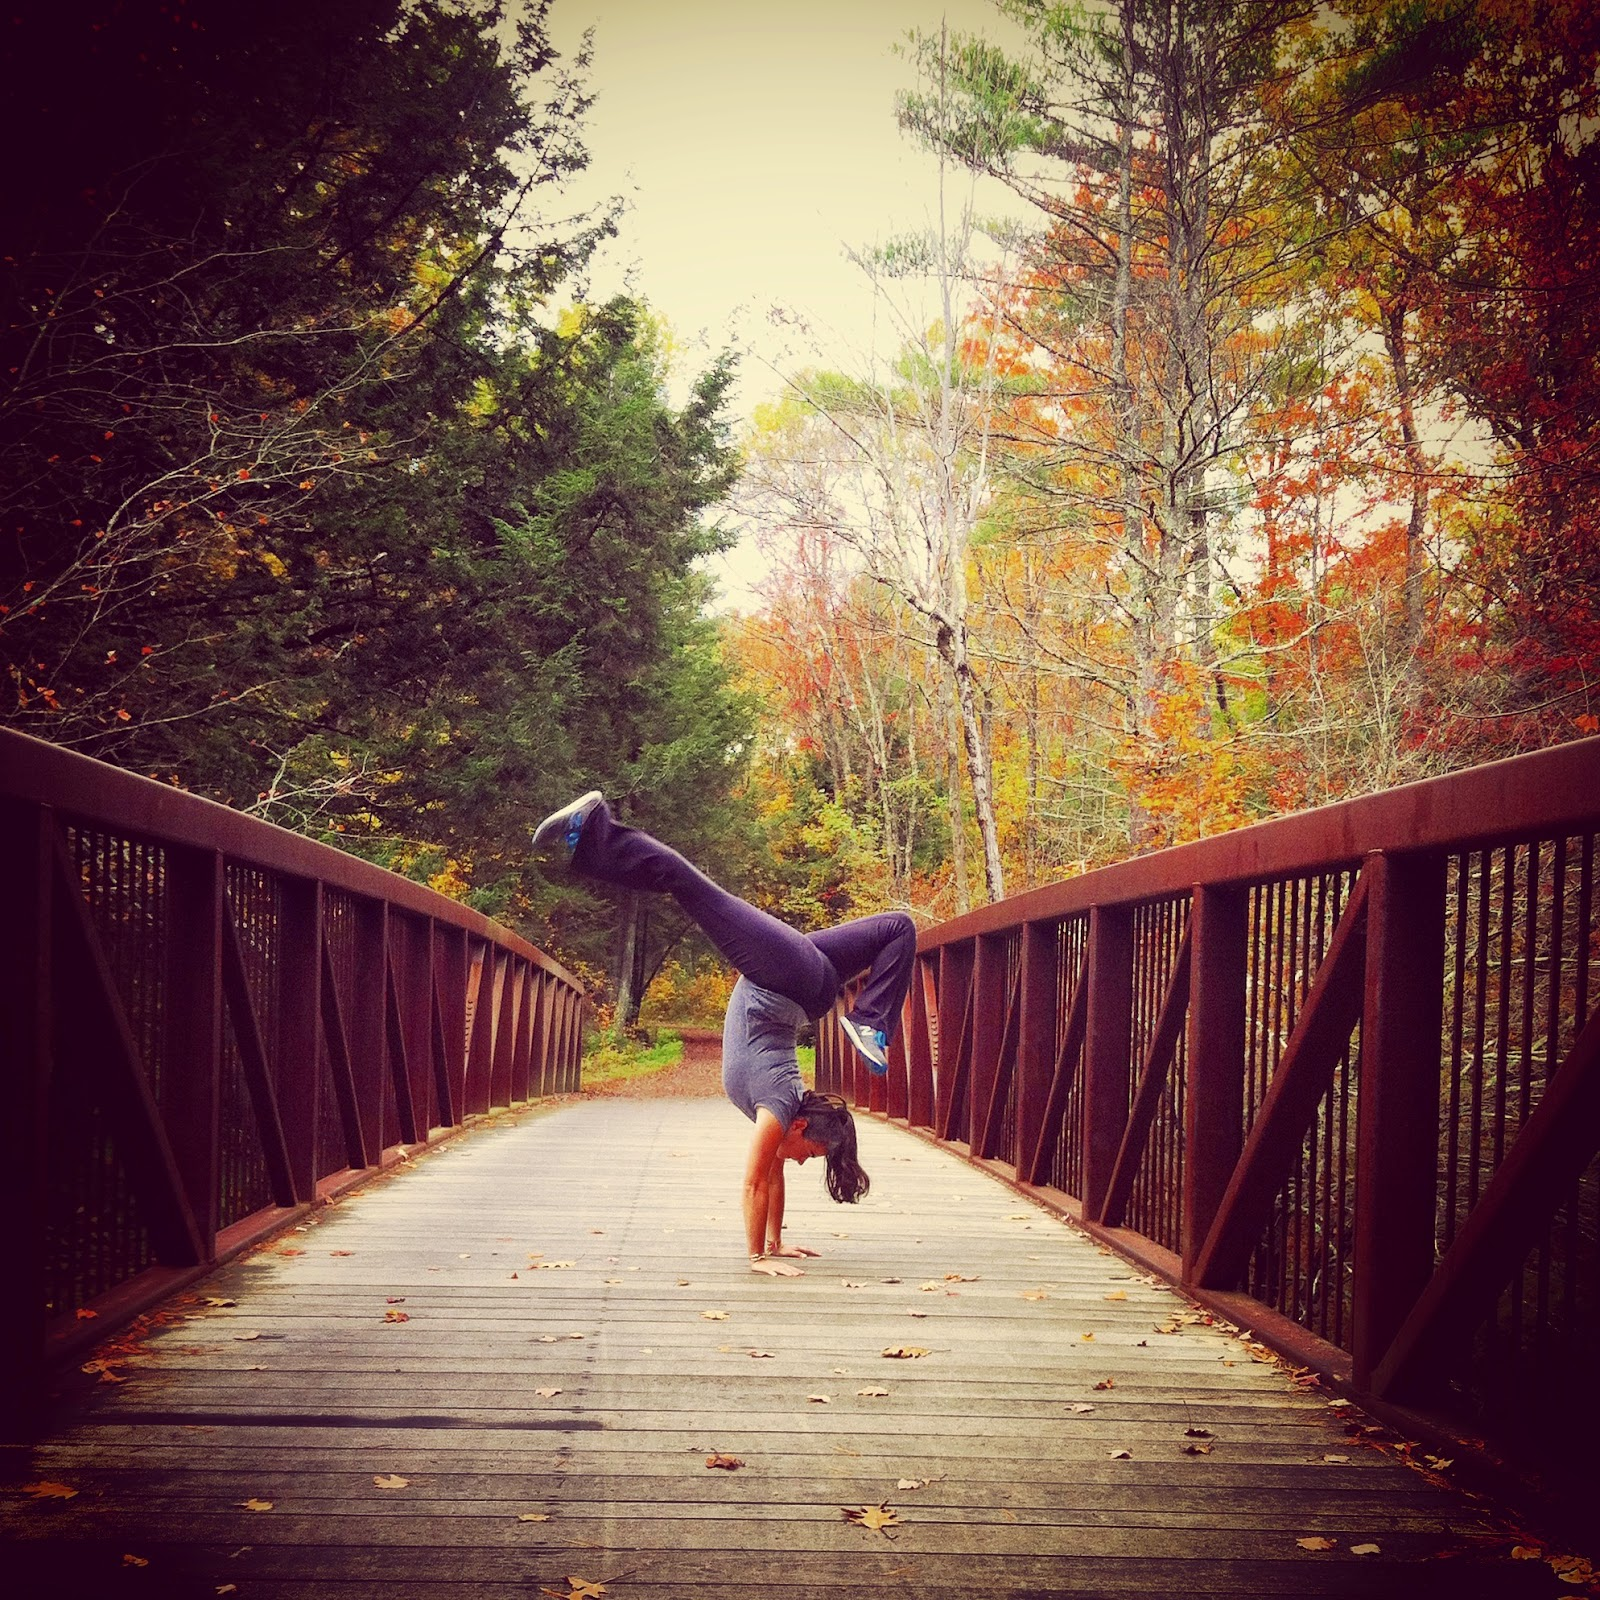 Autumn Handstand on a Bridge